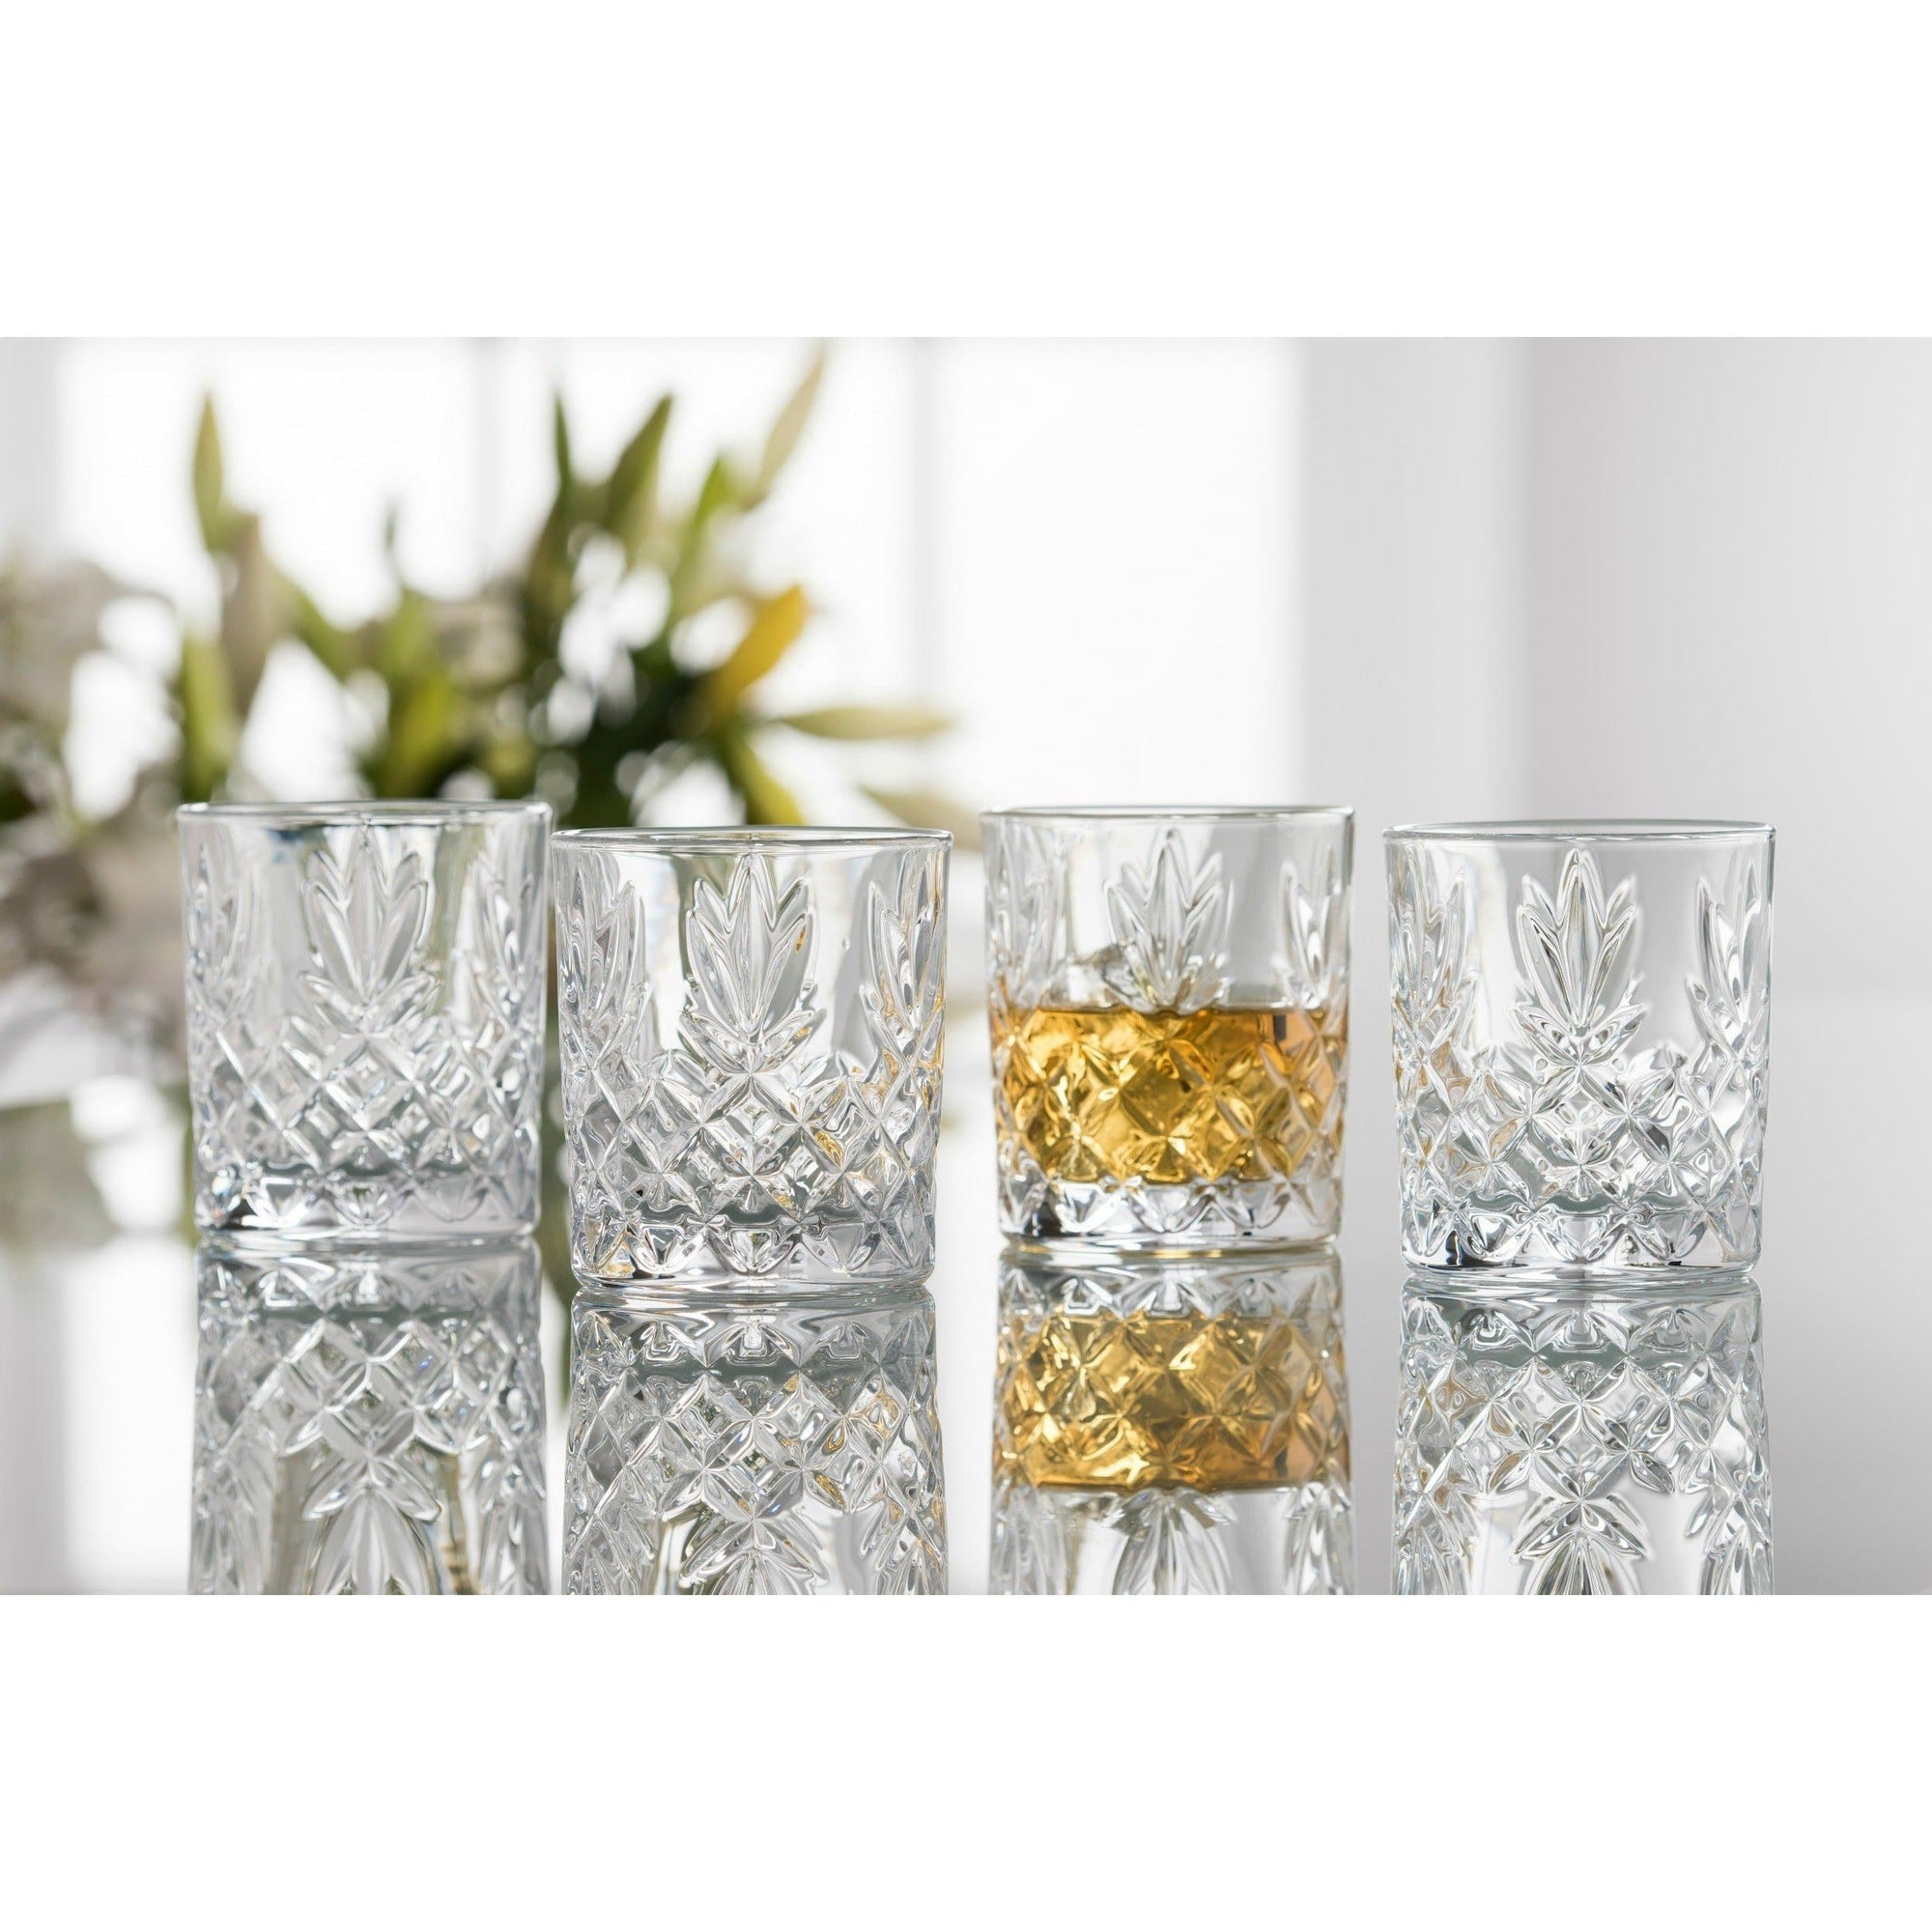 Renmore D.O.F/Whiskey (Set of 4) (G350064) - Galway Irish Crystal